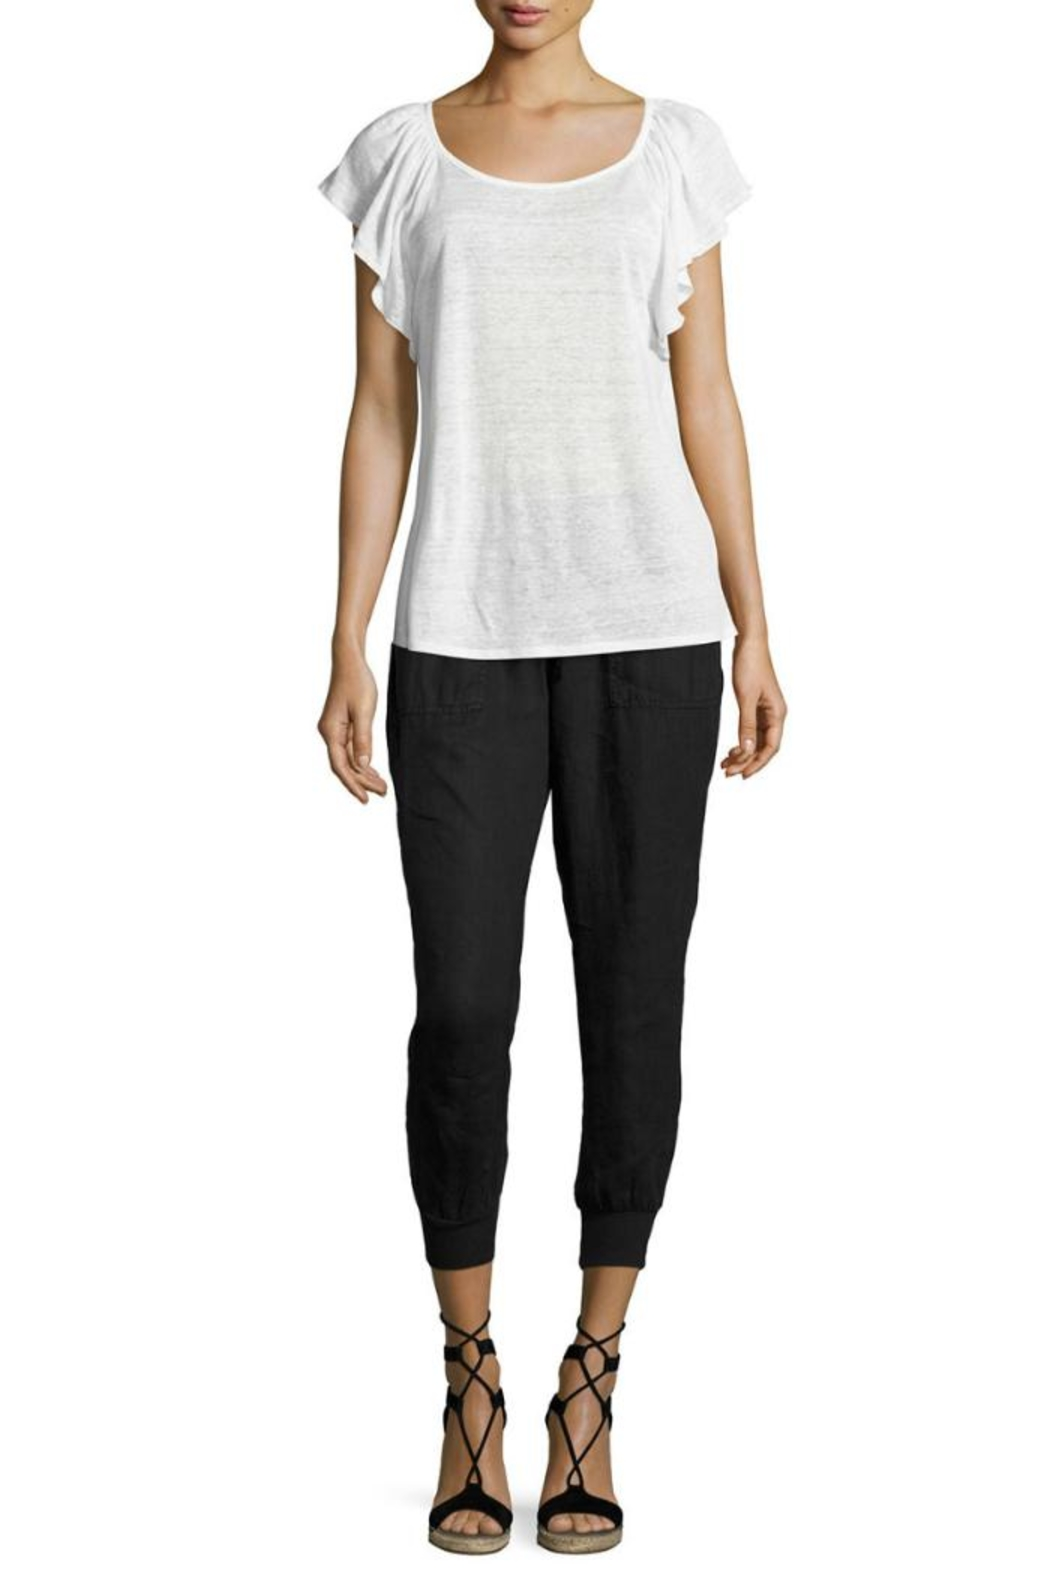 Joie Cynthia Linen Pant - Side Cropped Image